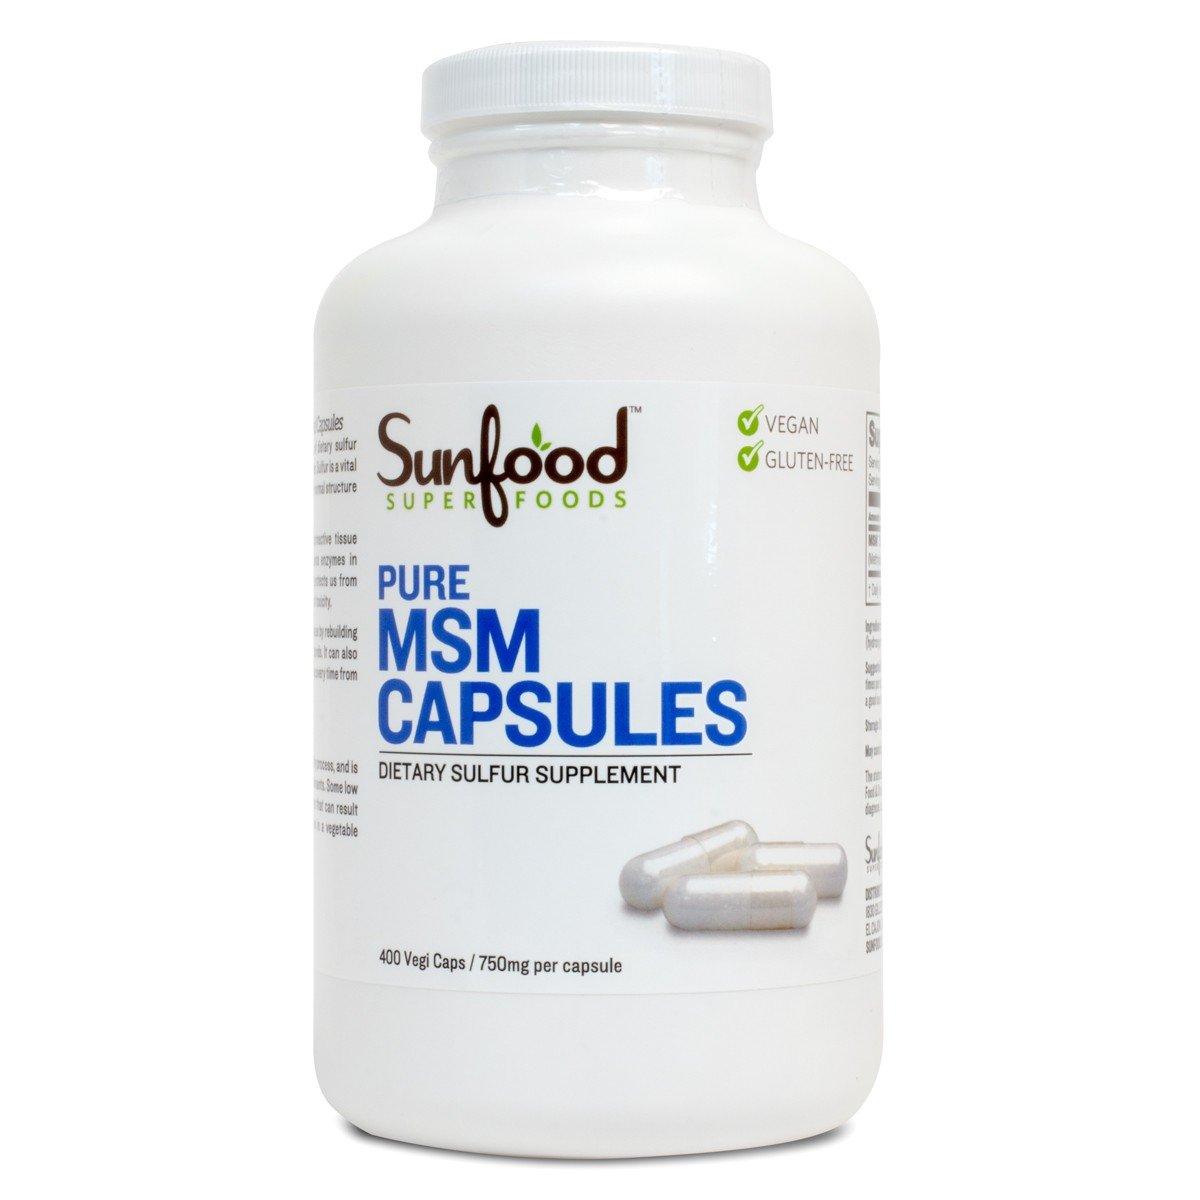 Sunfood Superfoods Pure MSM Capsules  100% Pure MSM  750 mg Capsules, 400  Count Bottle